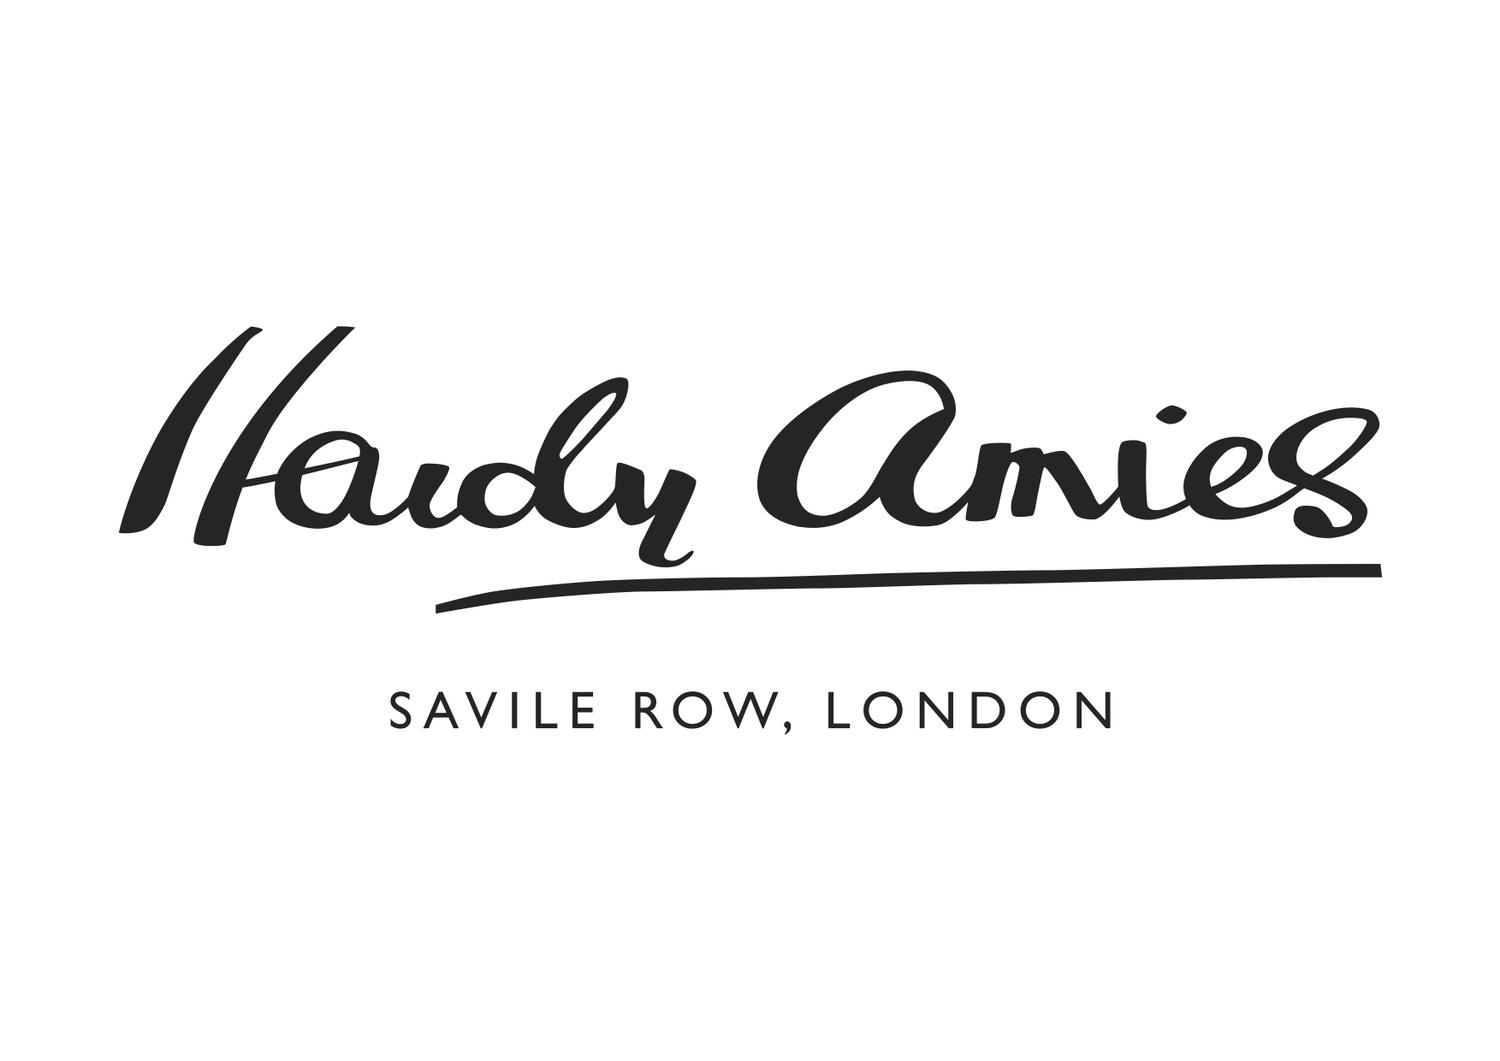 {'liked': 0L, 'description': u' As a Savile Row brand, Hardy Amies comes from the home of tailoring and is informed by an impressive heritage. And yet, Sir Hardy himself was a new figure on the \u2018Row\u2019 in the Forties, not encumbered with years of historical baggage.', 'fcount': 1, 'logo': u'https://d2go30nqlx7k6d.cloudfront.net/designer/HARDY-AMIES-1489730629', 'viewed': 1551L, 'category': u'c', 'name': u'HARDY AMIES', 'url': 'HARDY-AMIES', 'locname': u'HARDY AMIES', 'mcount': 298, 'haswebsite': True}